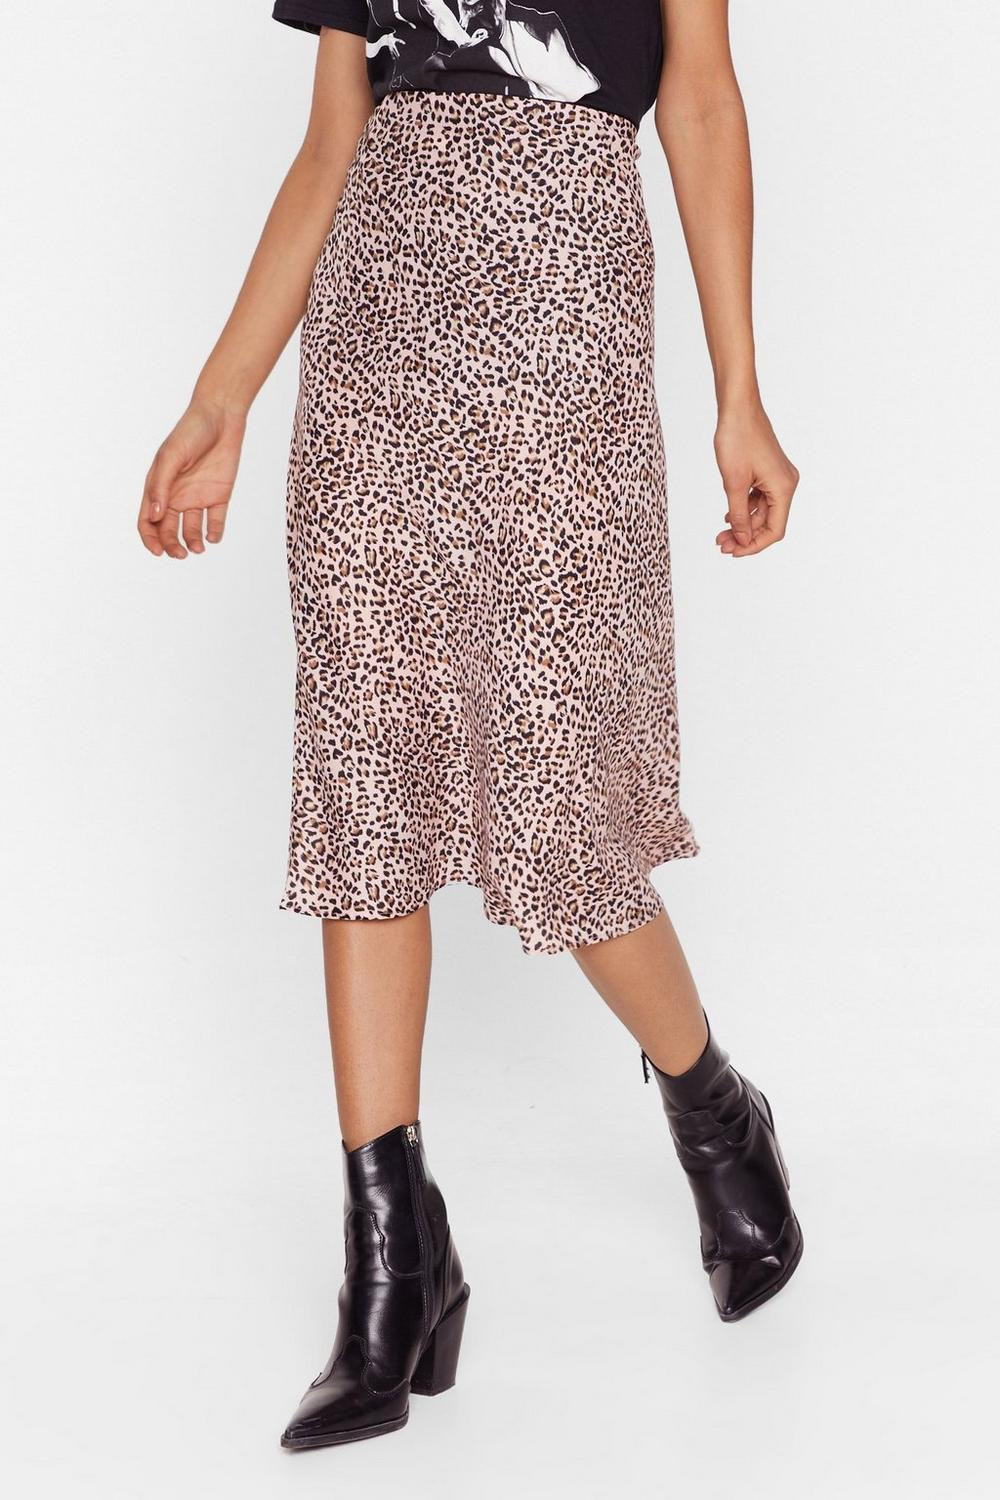 Leopard Satin Skirt